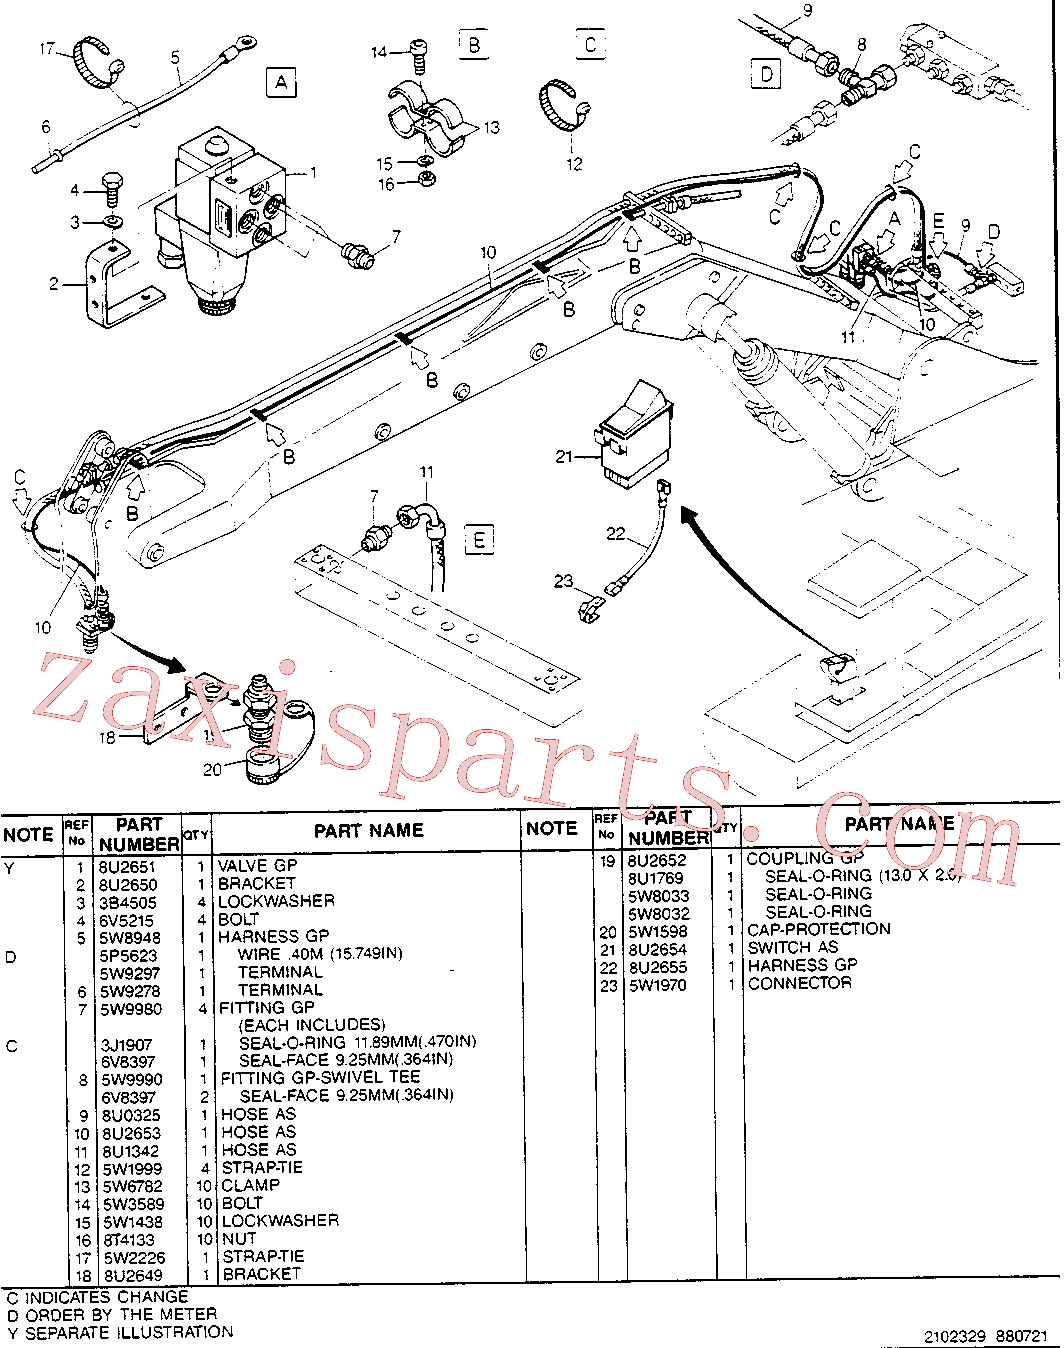 CAT 5W-6782 for 214B FT Excavator(EXC) hydraulic system 8U-2656 Assembly